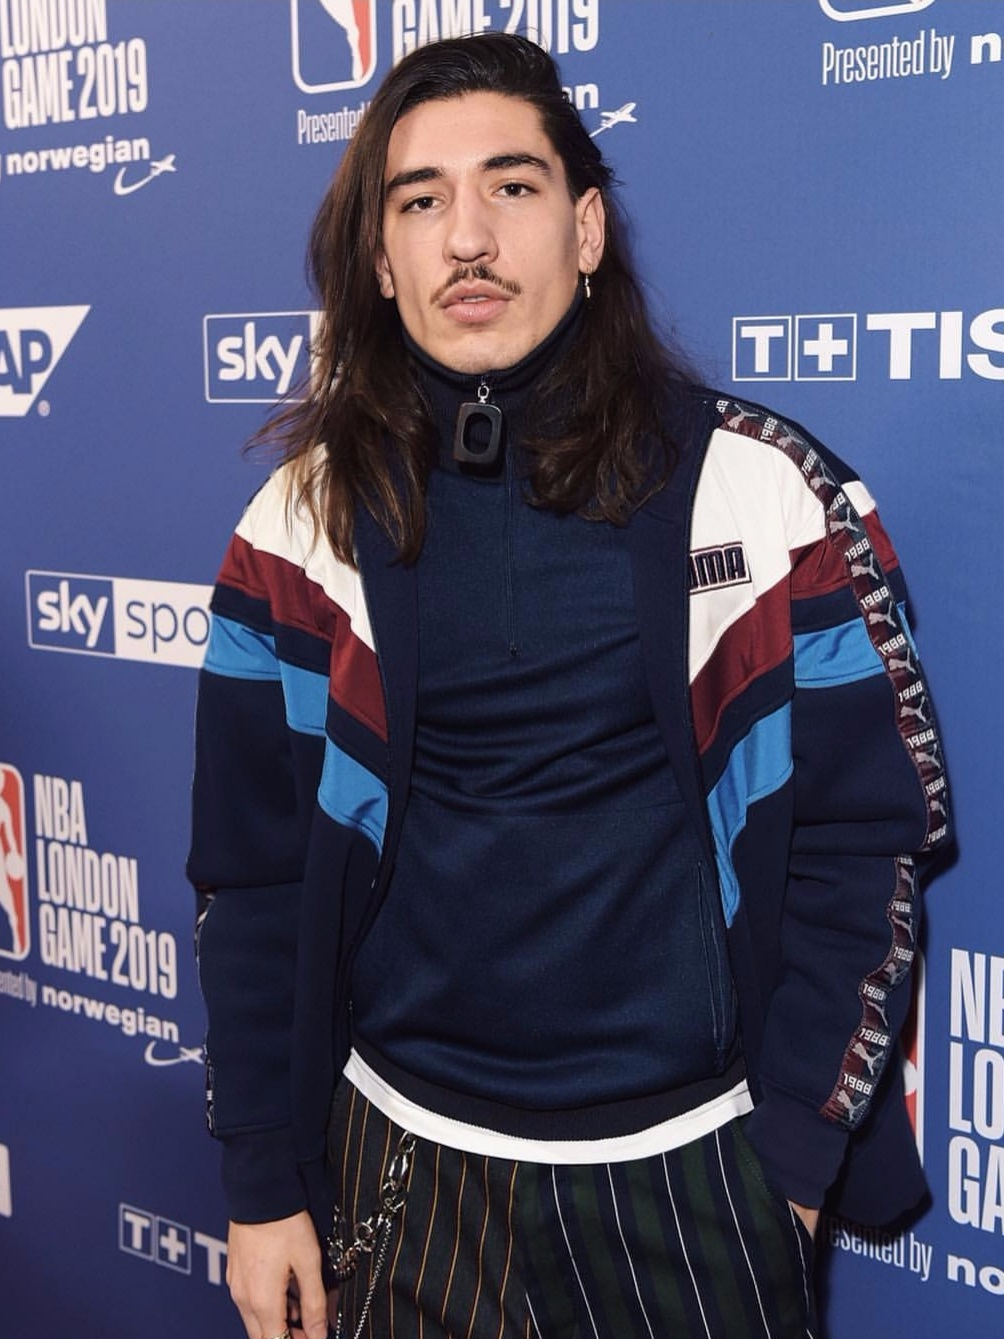 Hector Bellerin, Arsenal FC Defender